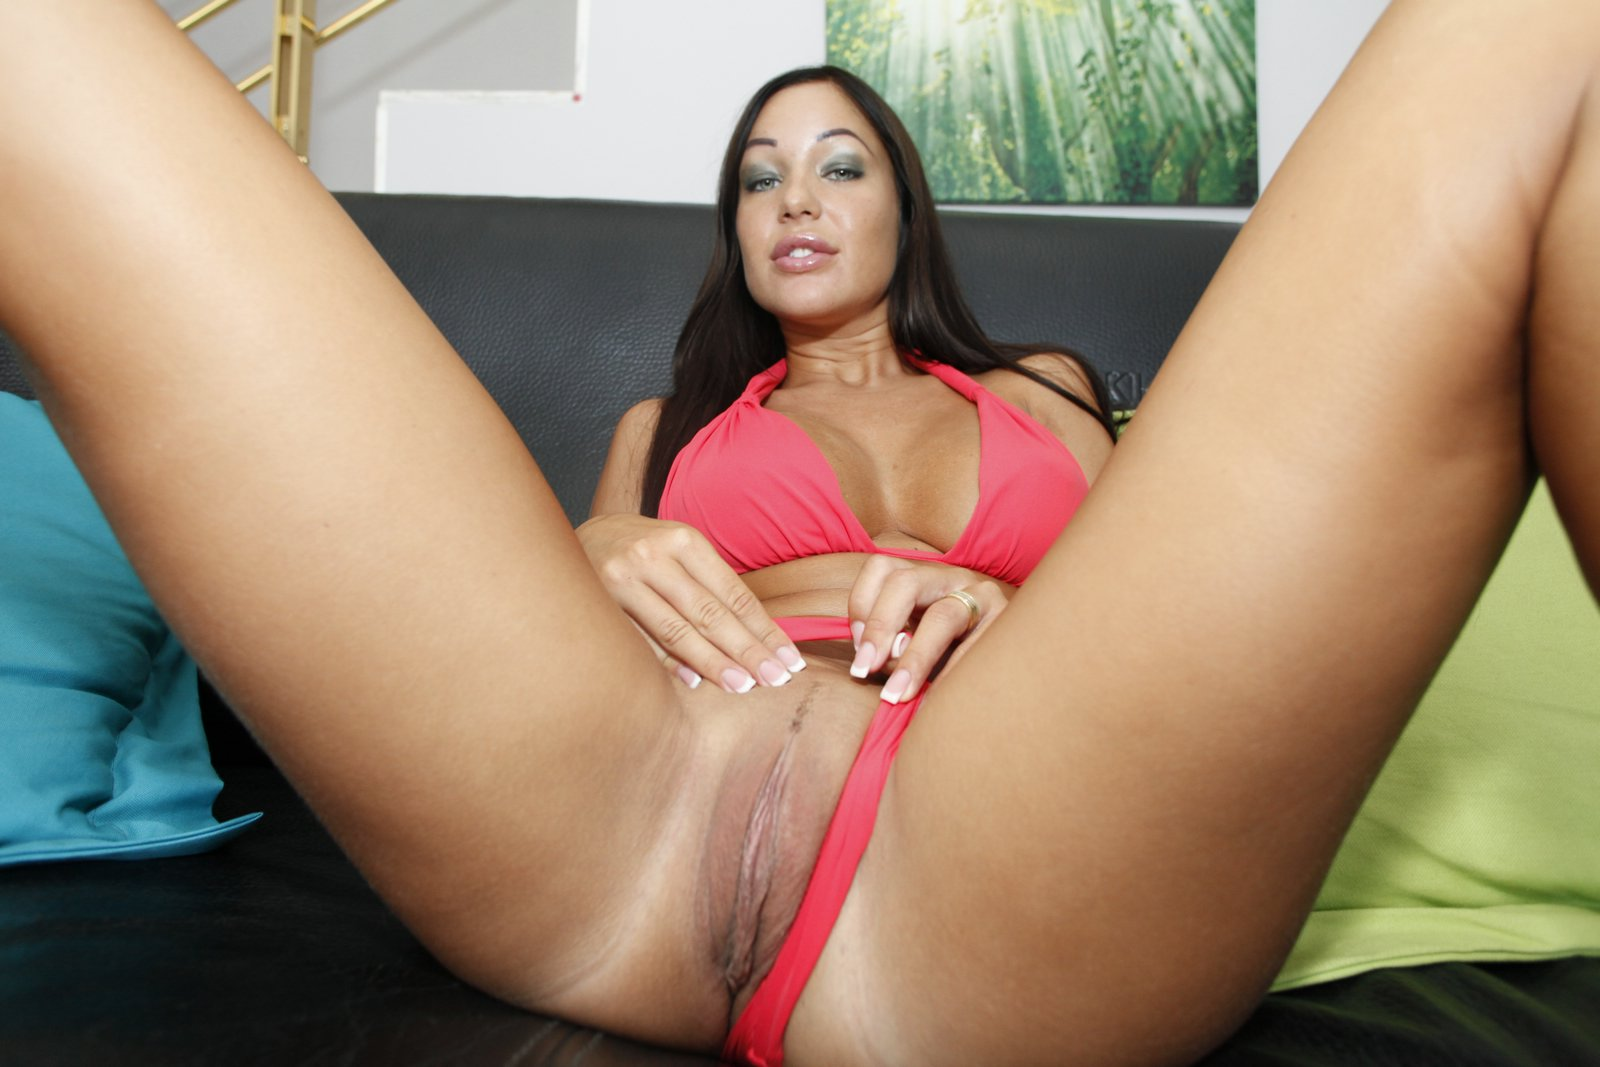 homemade video of wife with dildo